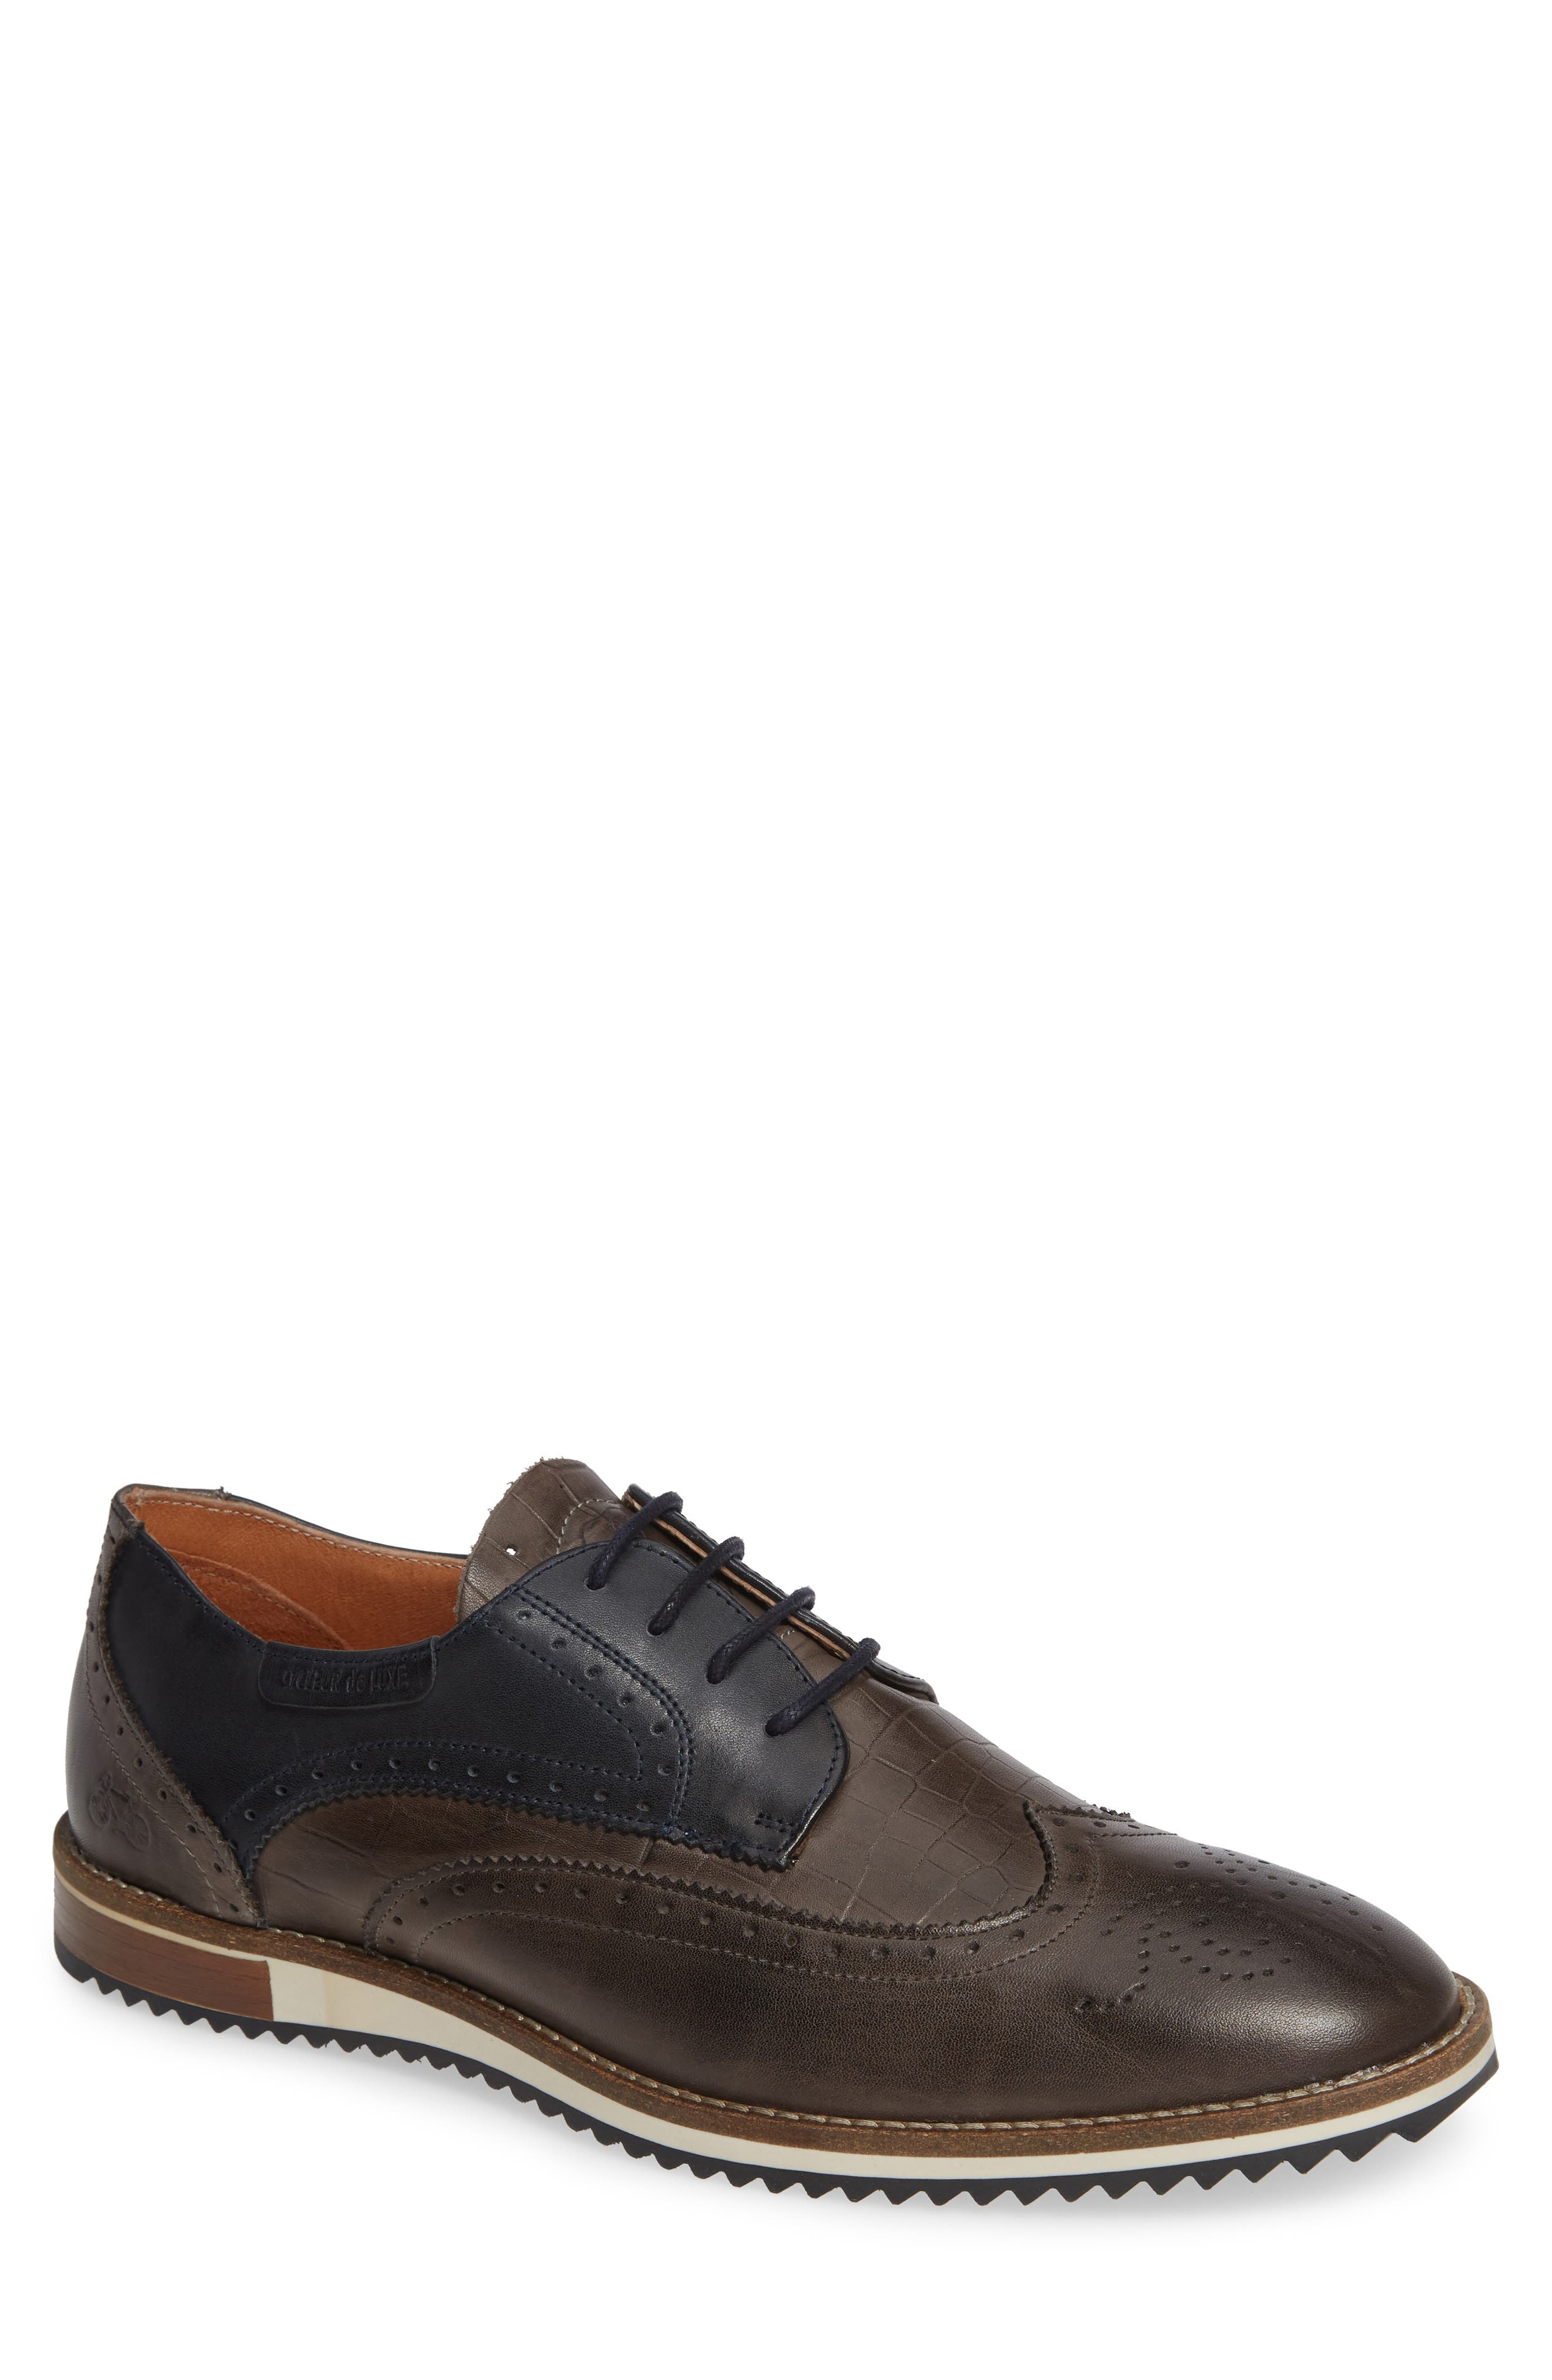 Pulsano Textured Wingtip,                             Main thumbnail 1, color,                             ANTHRACITE